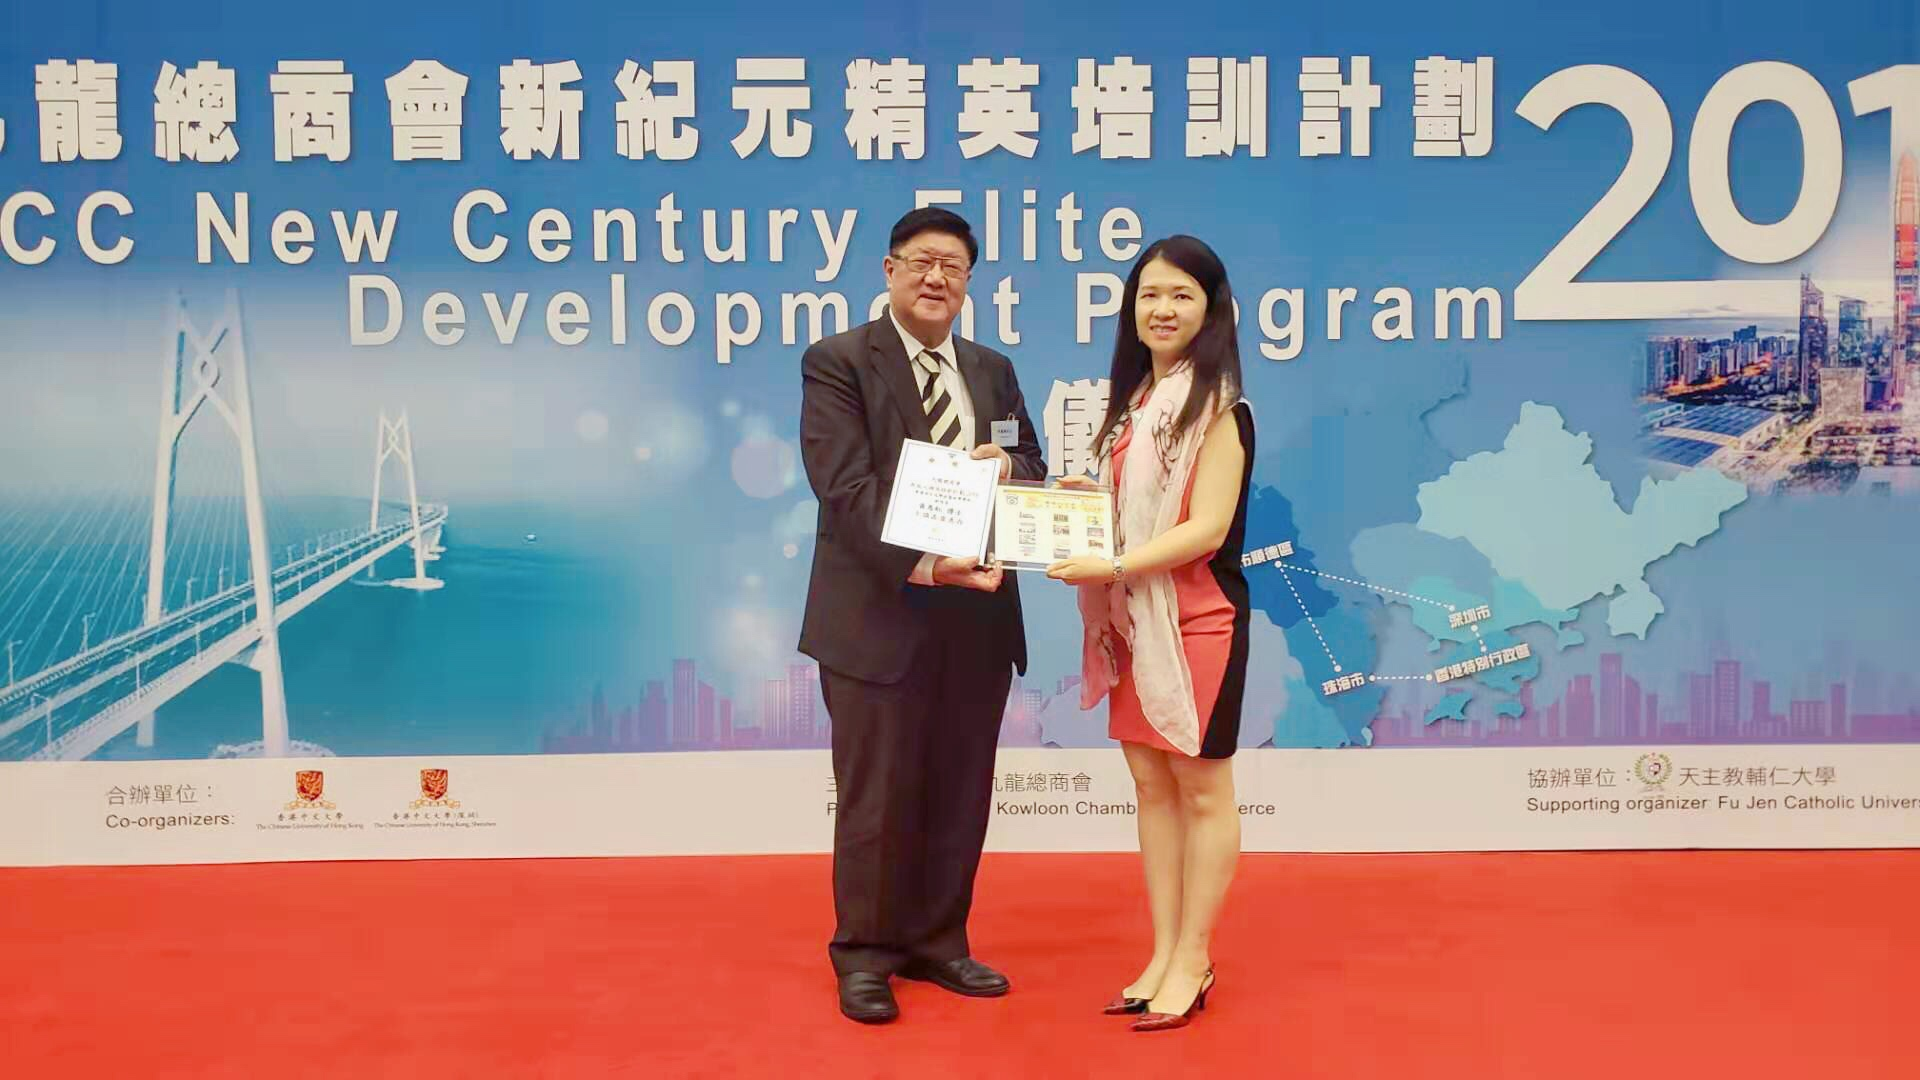 Certificate of Appreciation was awarded to Dr. Collin Wong